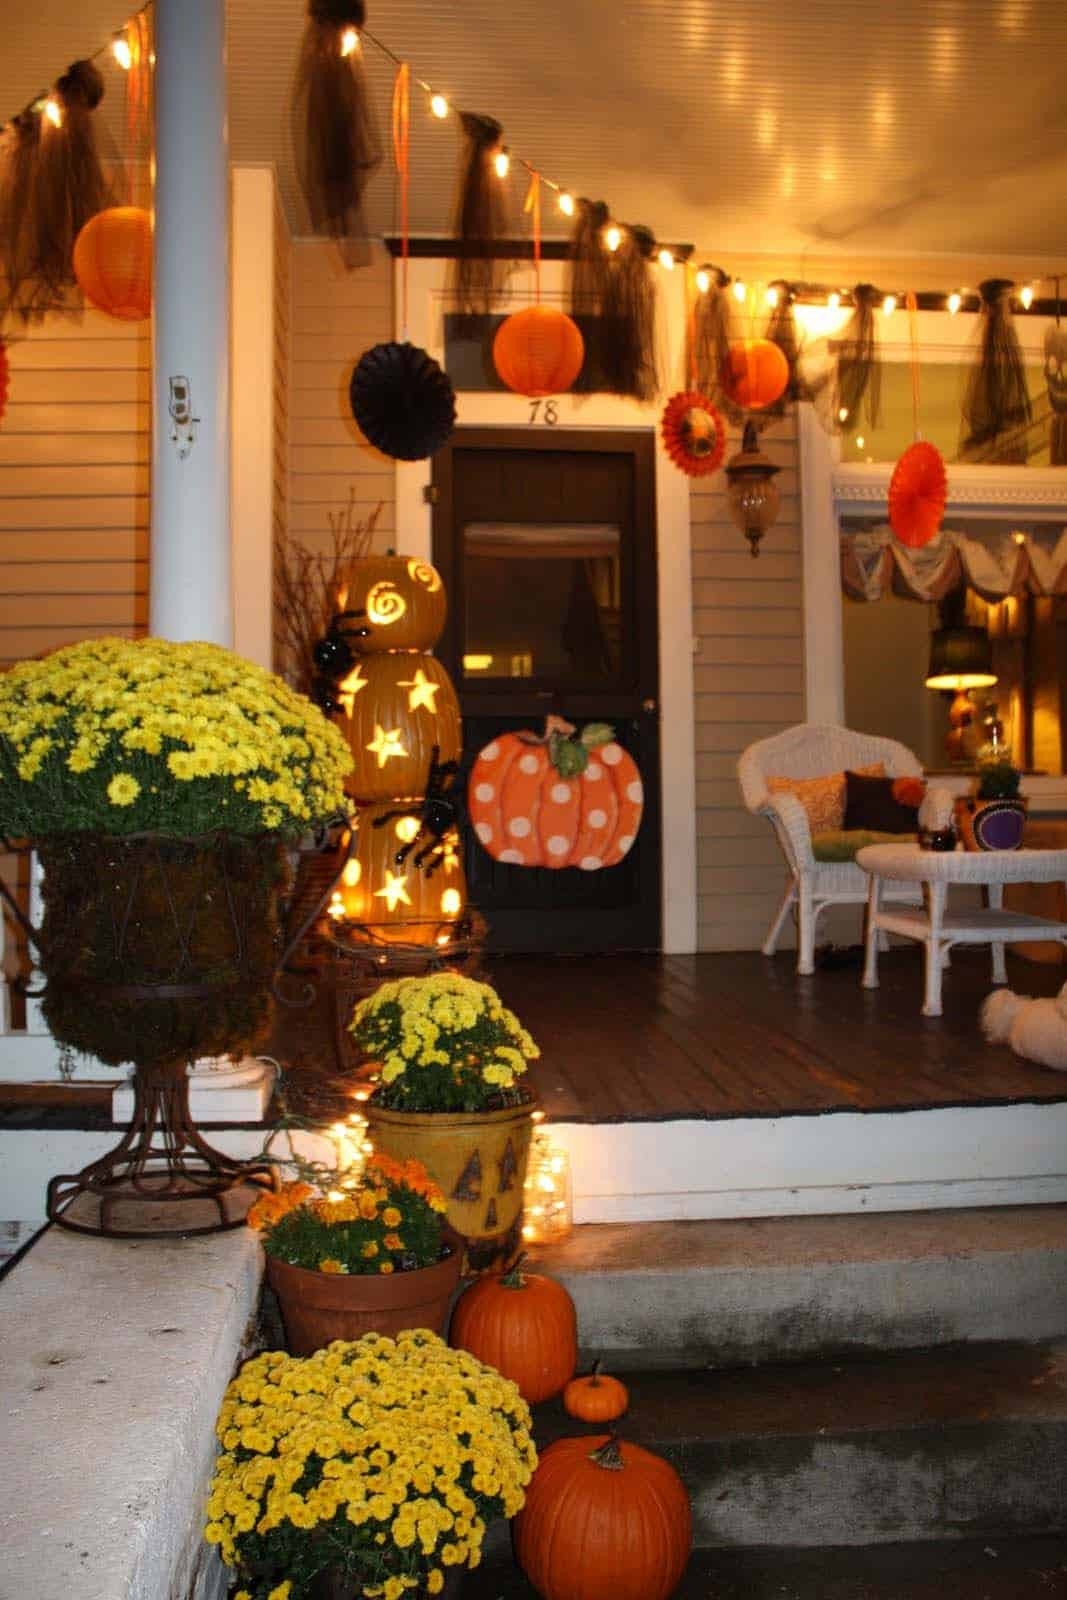 46 of the Coziest Ways to Decorate your Outdoor Spaces for ... on Backyard Patio Decorating Ideas id=90408